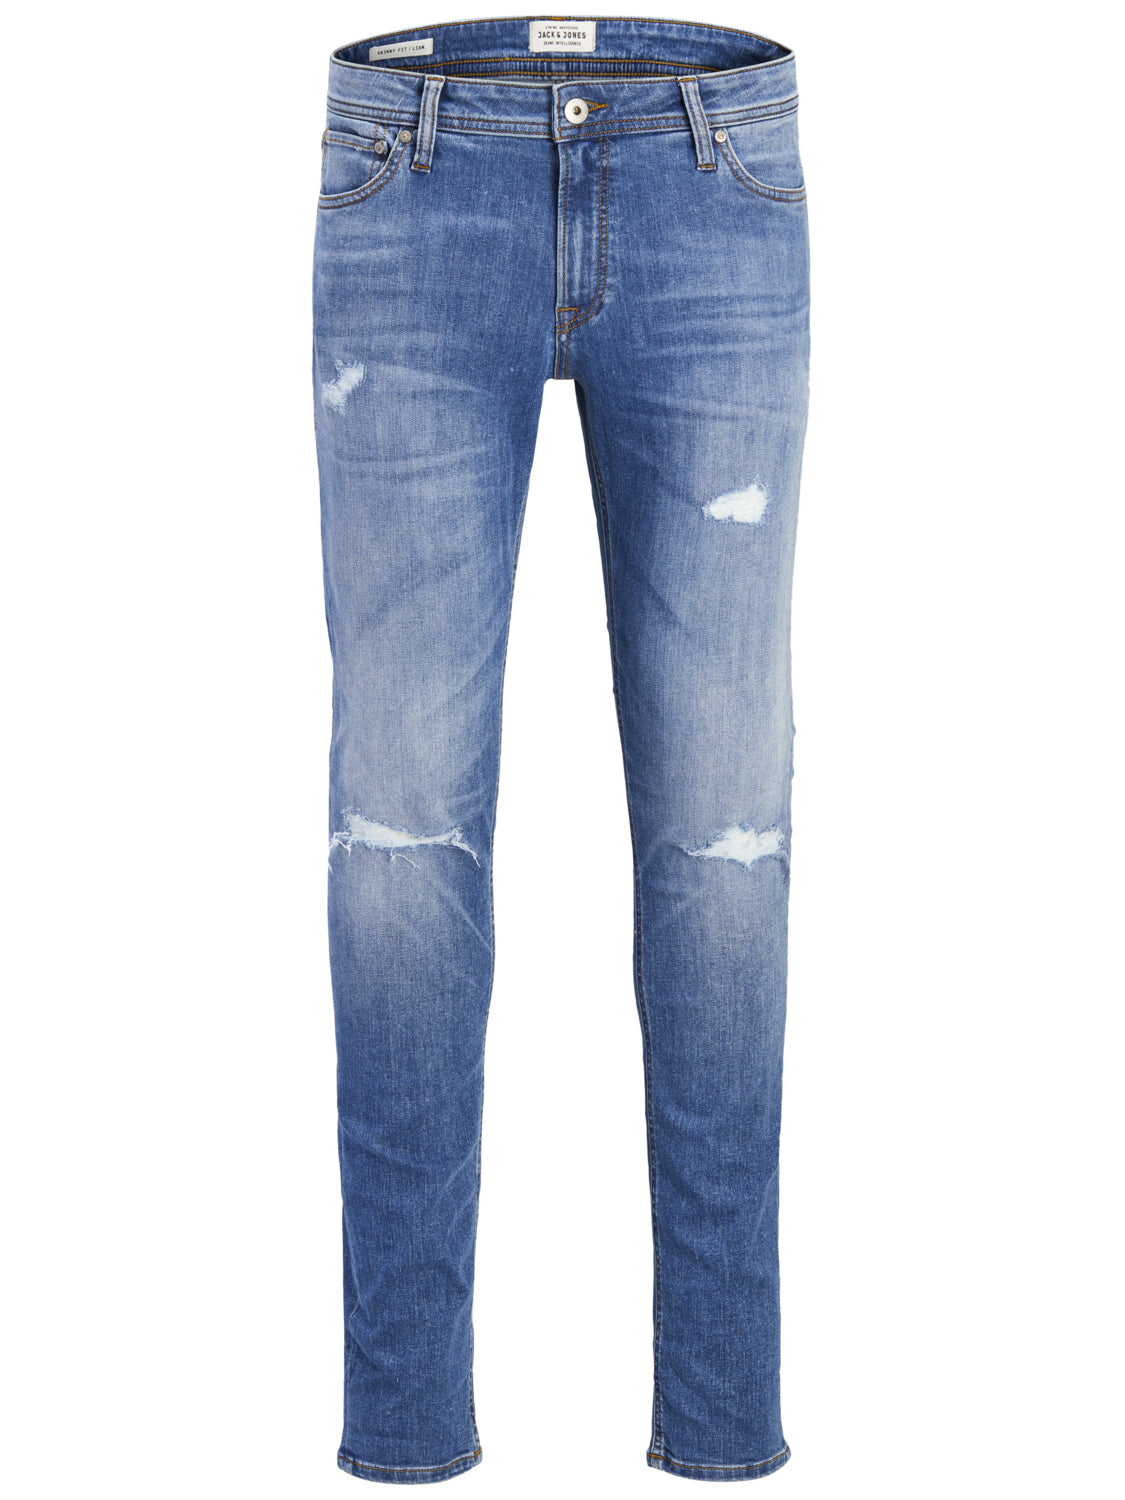 9ada3168fb75 SKINNY FIT LIAM 820 JEANS WITH USED DETAILS